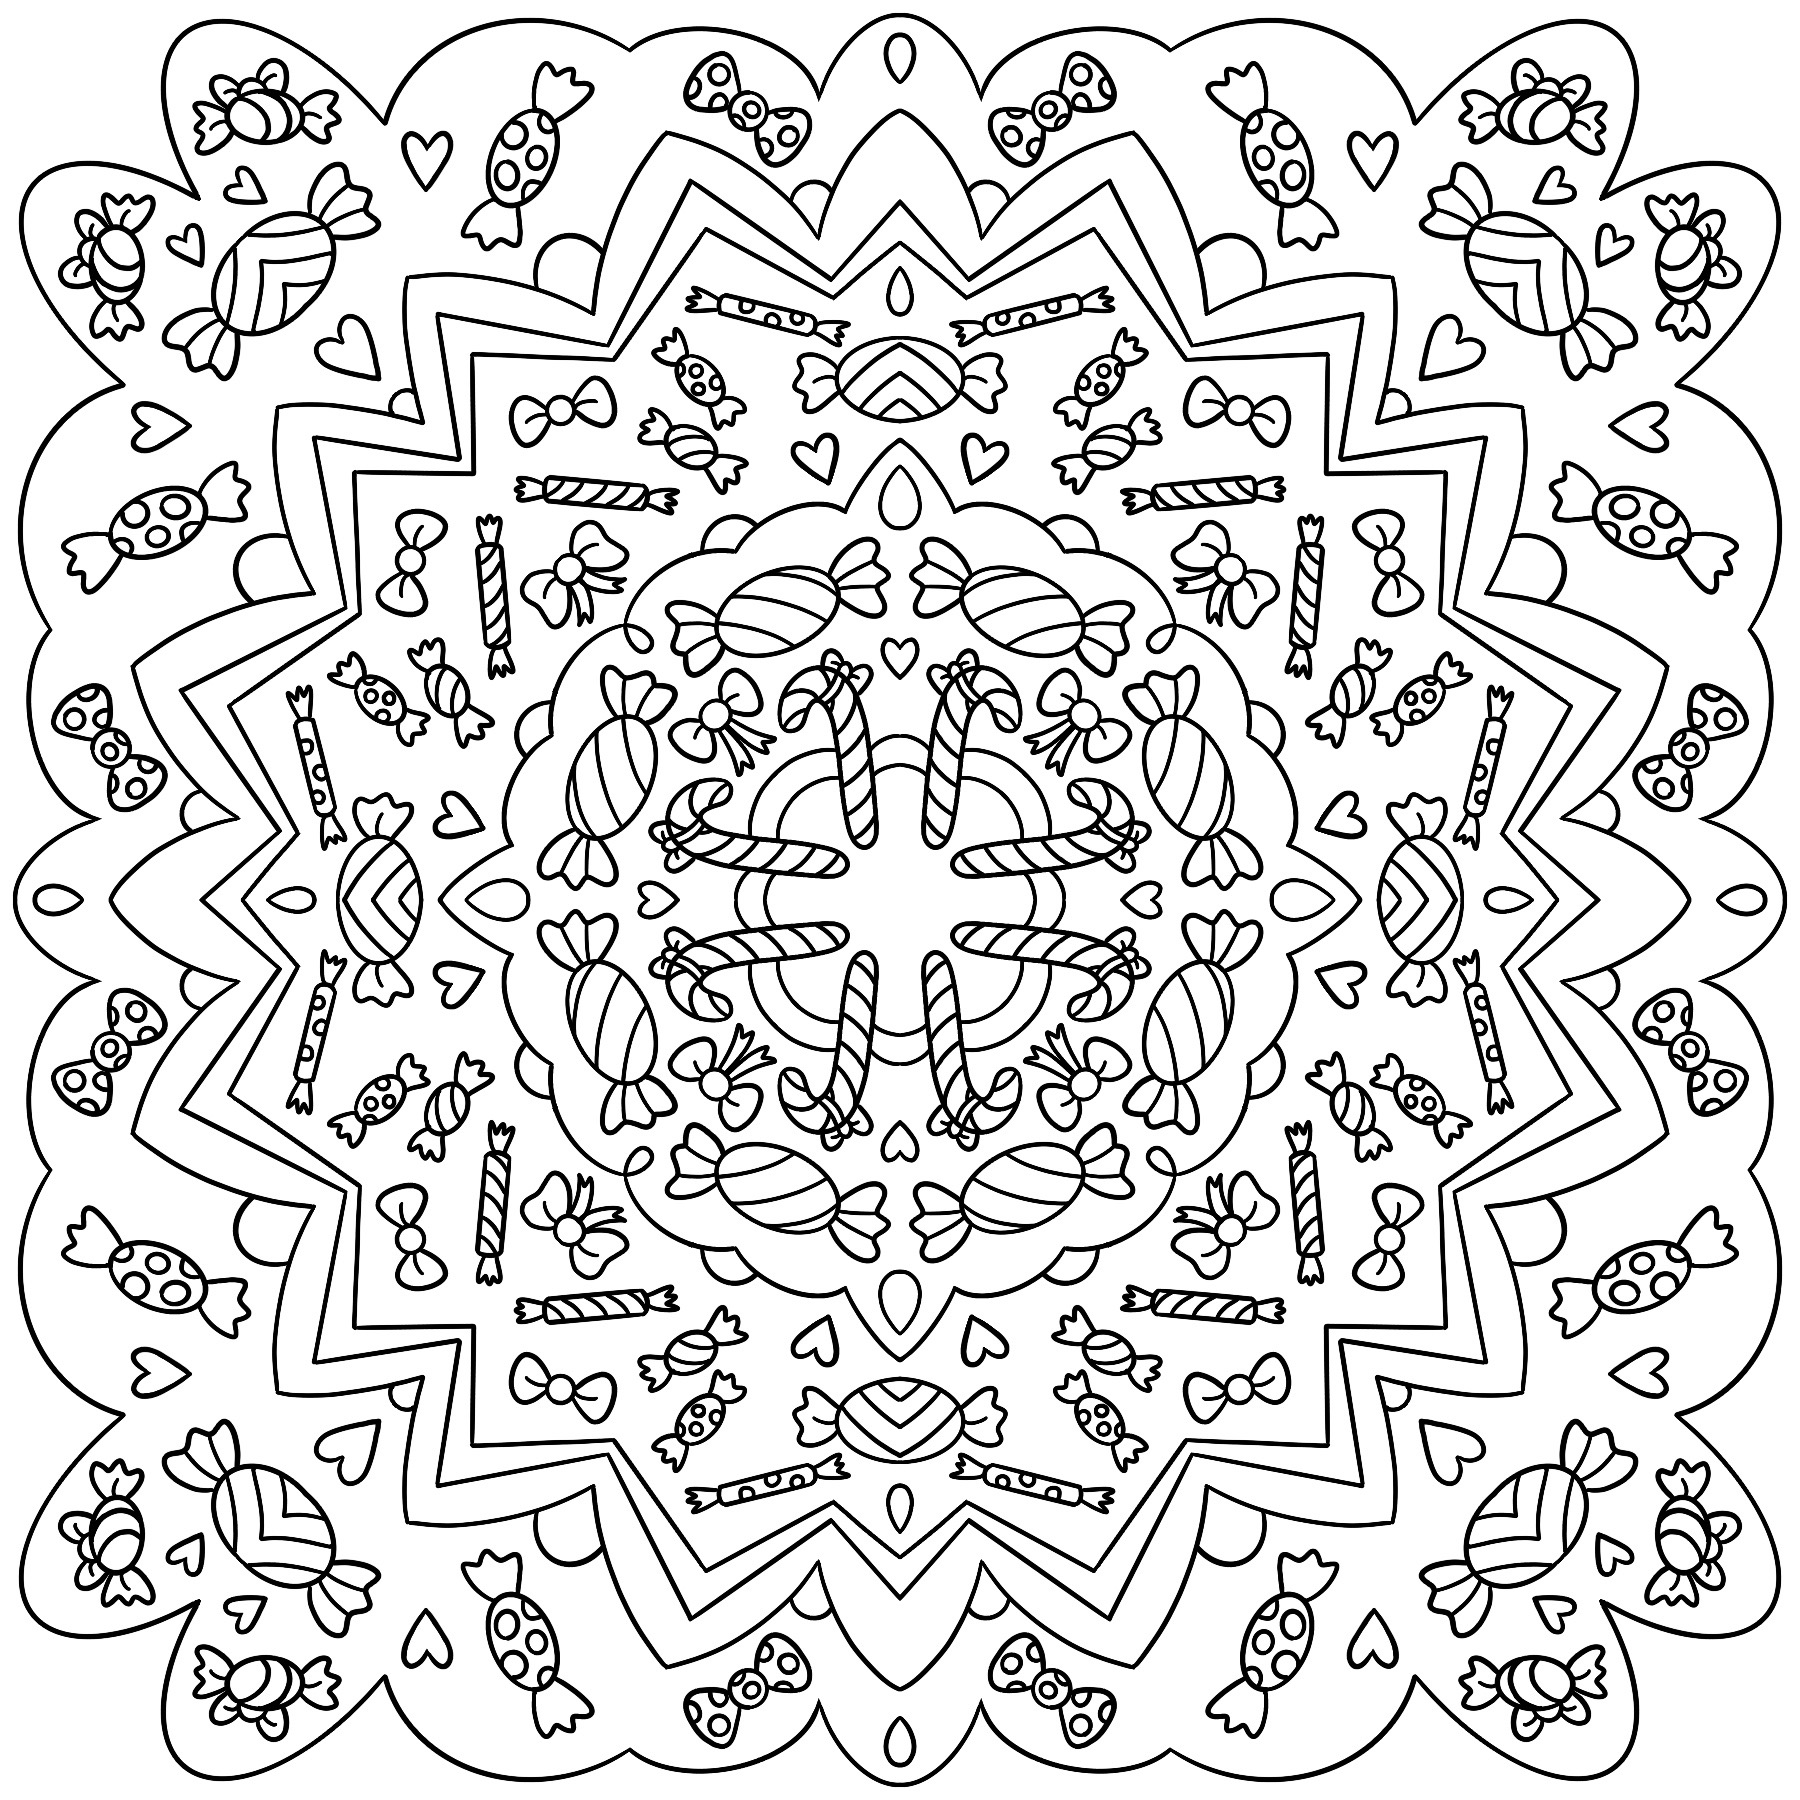 Sweets colouring page